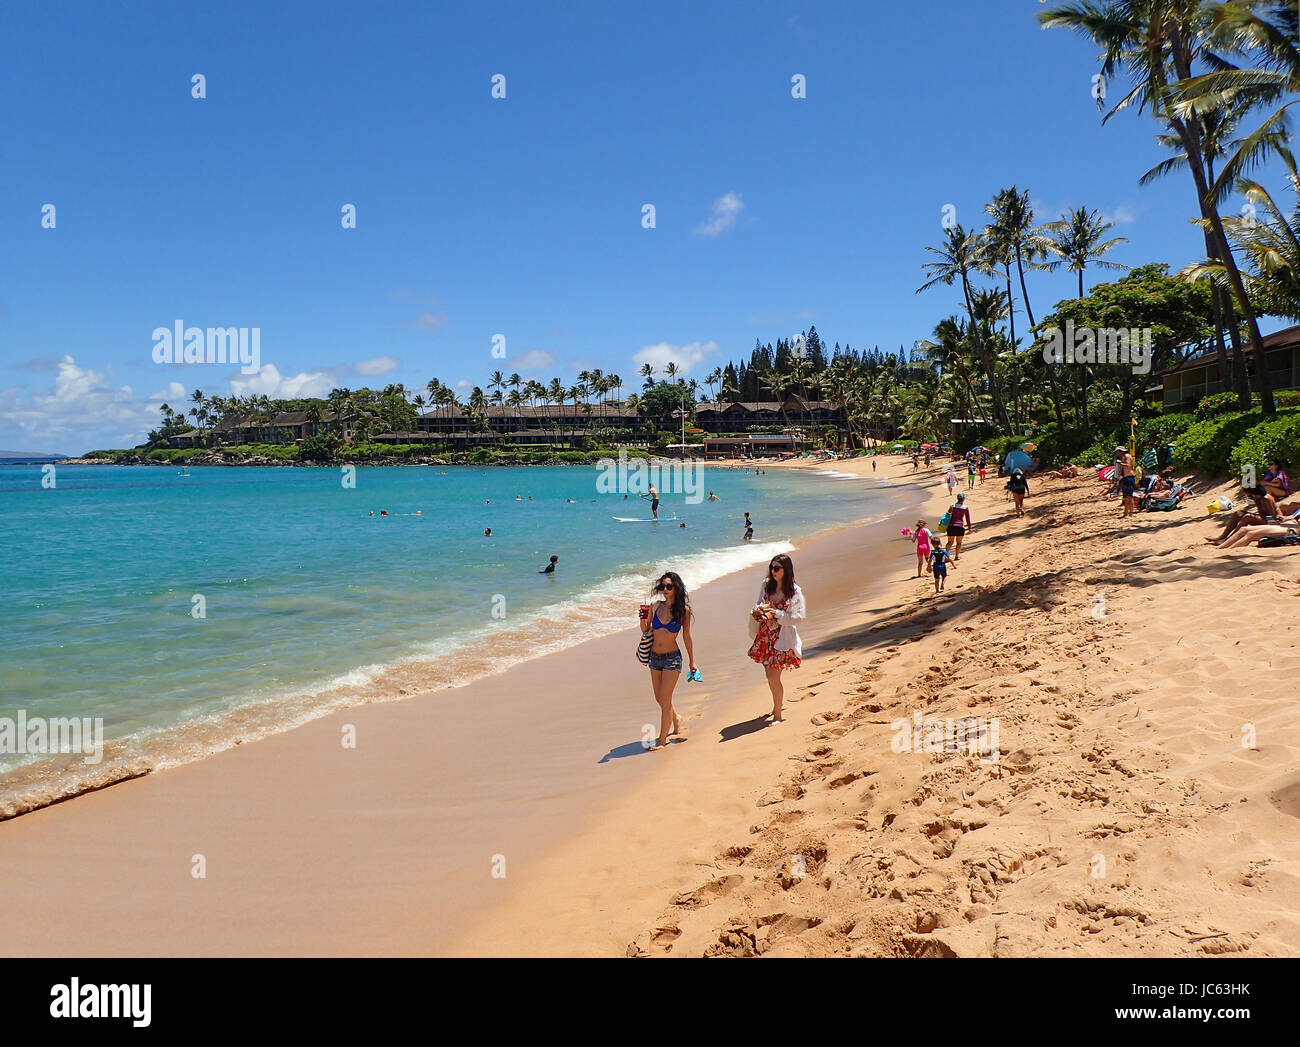 Napili bay beach, Maui, Hawaii. Photo Stock